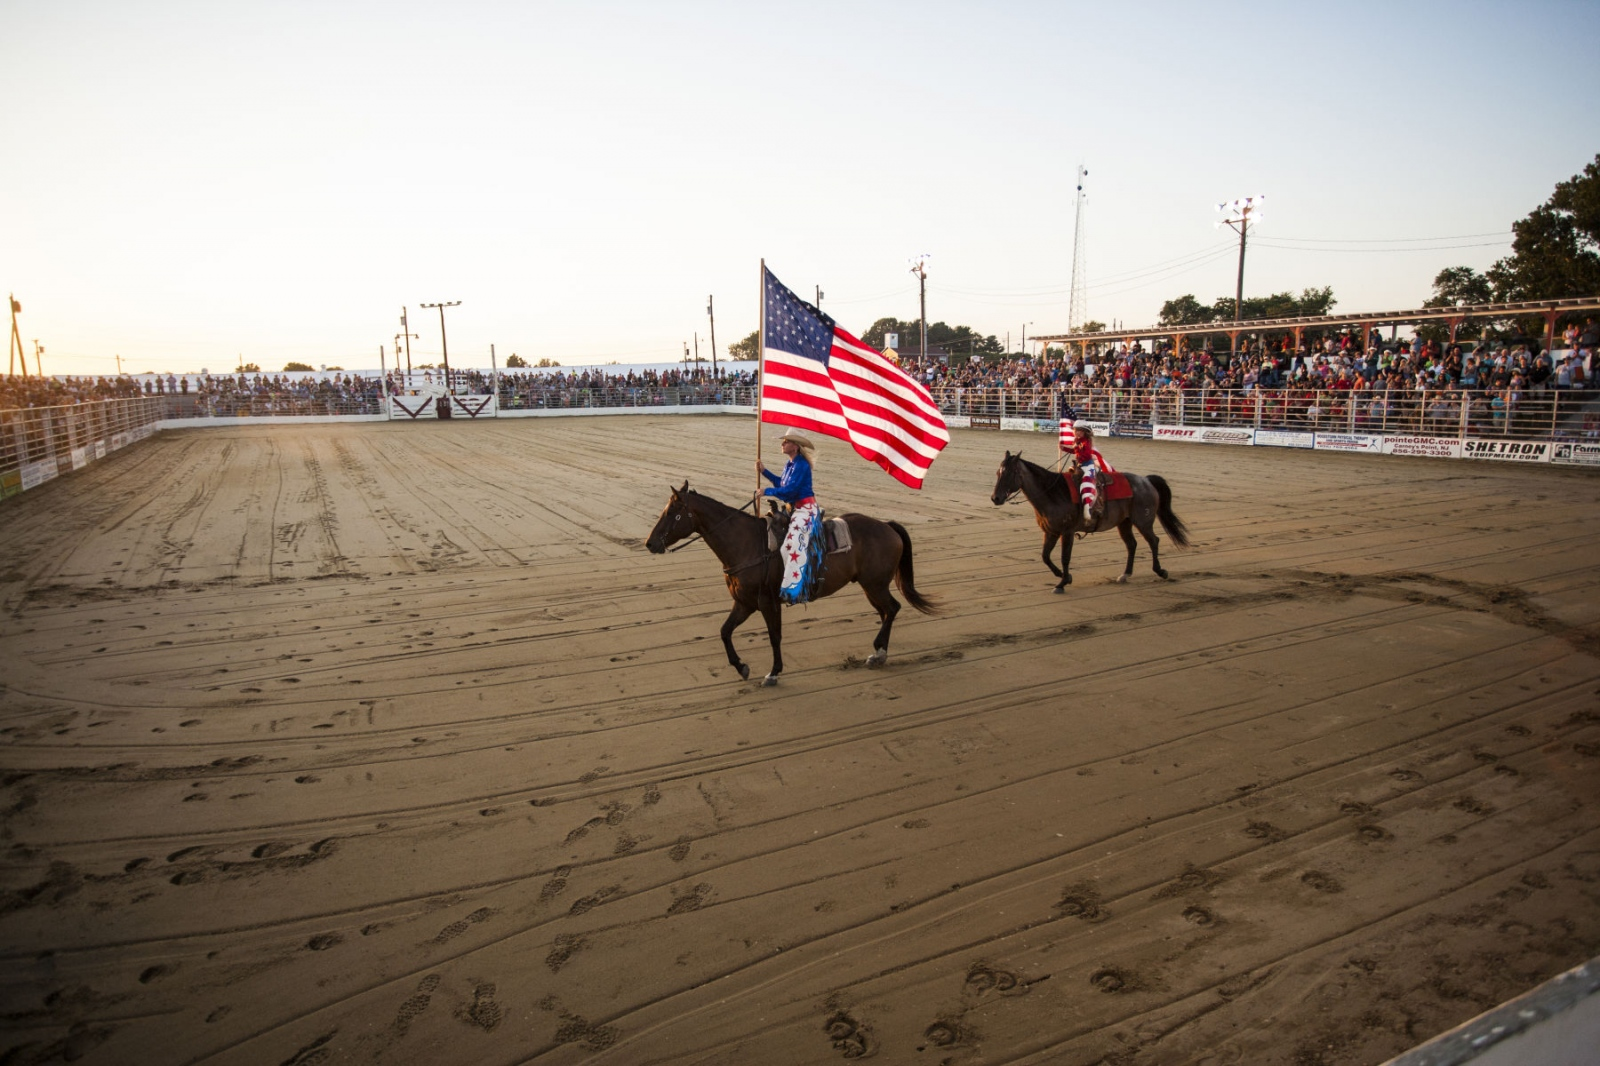 KatieHarris and hernicecarrying the American flag at Cowtown Rodeo in Woodstown, NJ. August 15, 2015 (Kevin C. Downs/Cosmos)